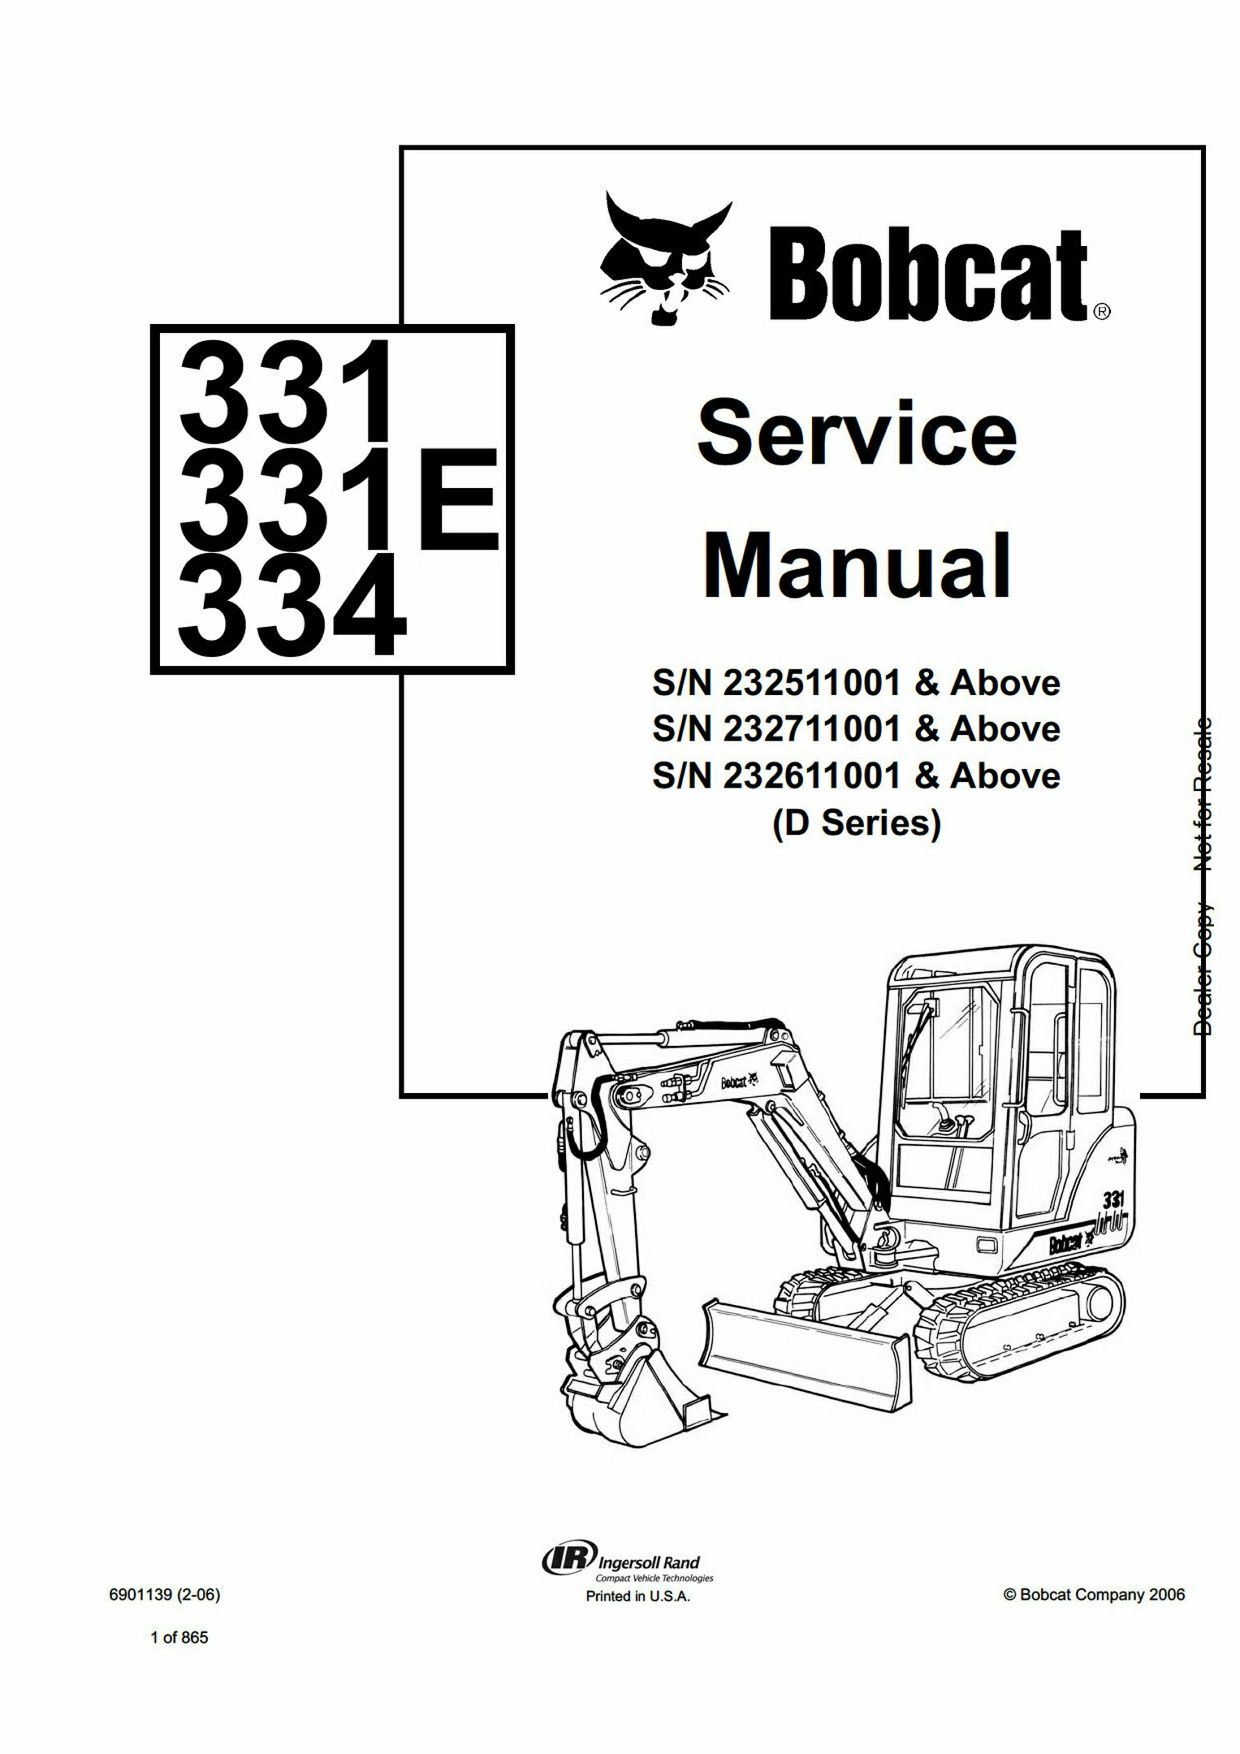 mnl 6760 bobcat 743b manual guide pdf 2019 ebook library rh jqmedical co